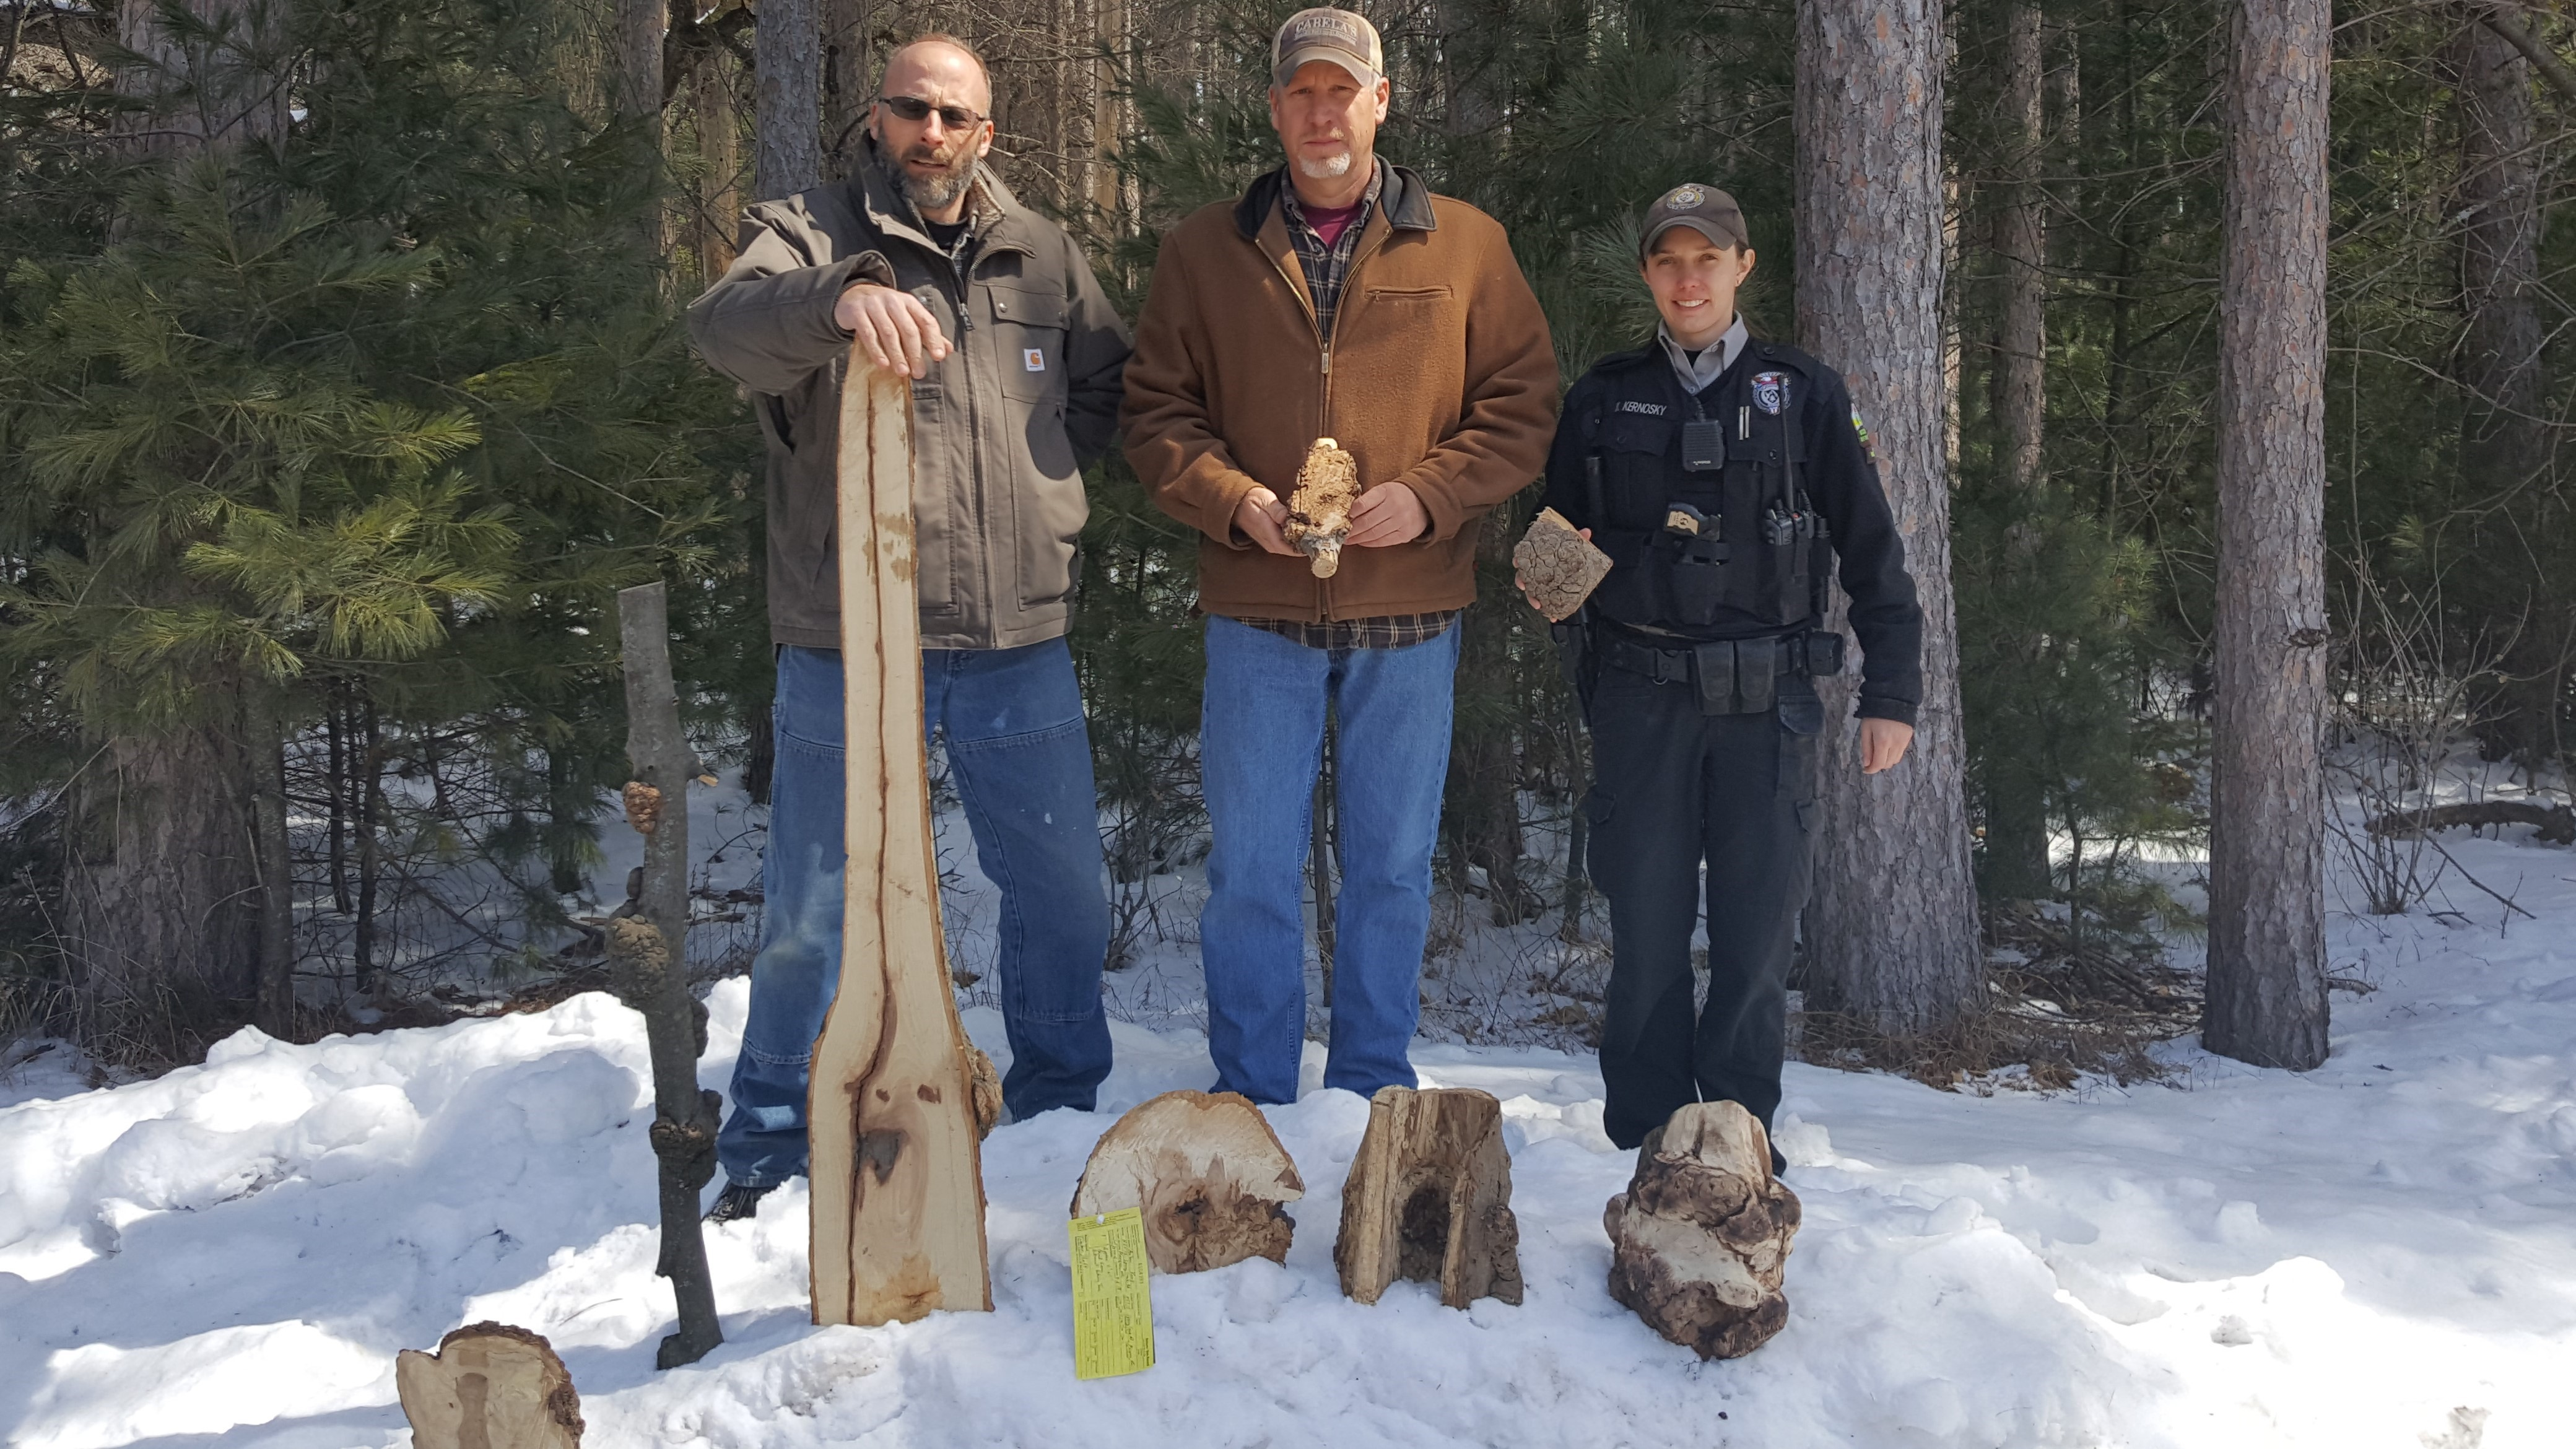 Forester Ben Baumgart, WDNR Warden Lt. Ted Dremel and WDNR Conservation Warden Kaitlin Kernosky with some of the stolen burls.